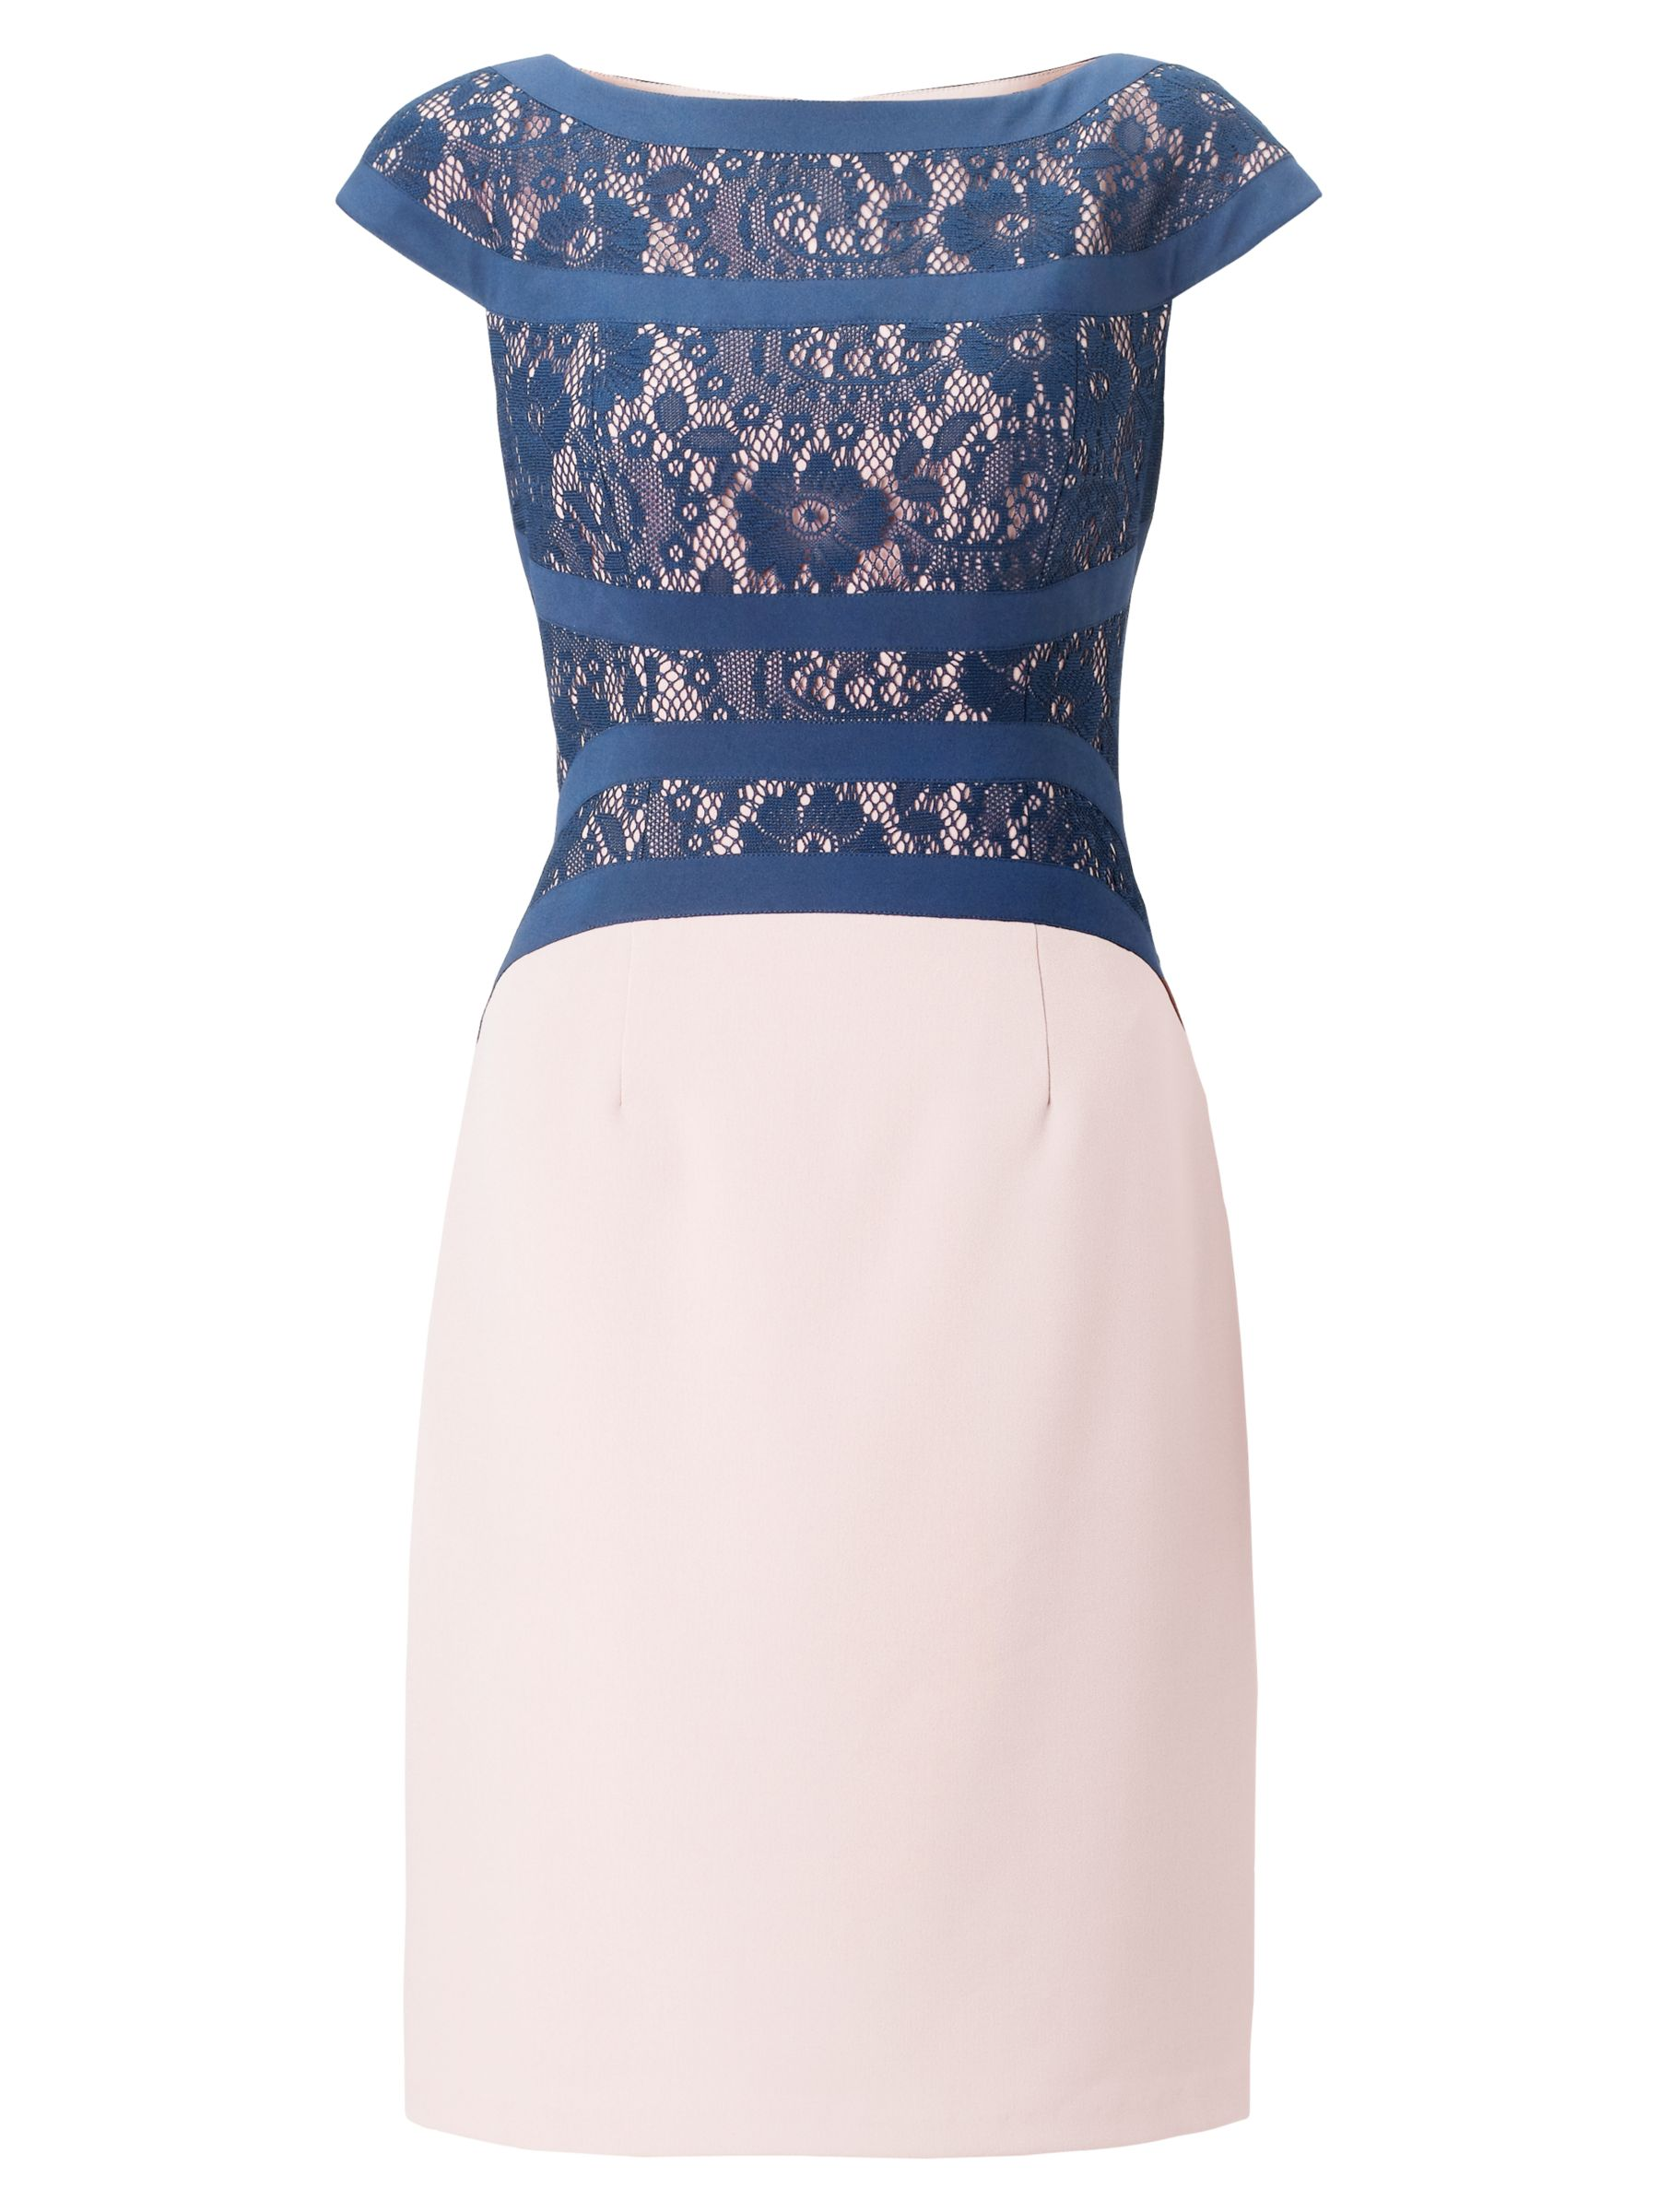 adrianna papell lace and bandage sheath dress dusk, adrianna, papell, lace, bandage, sheath, dress, dusk, adrianna papell, 8|14|10|16|12|18, women, brands a-k, womens dresses, gifts, wedding, wedding clothing, mother of the bride, female guests, inactive womenswear, outfit ideas, 1854258